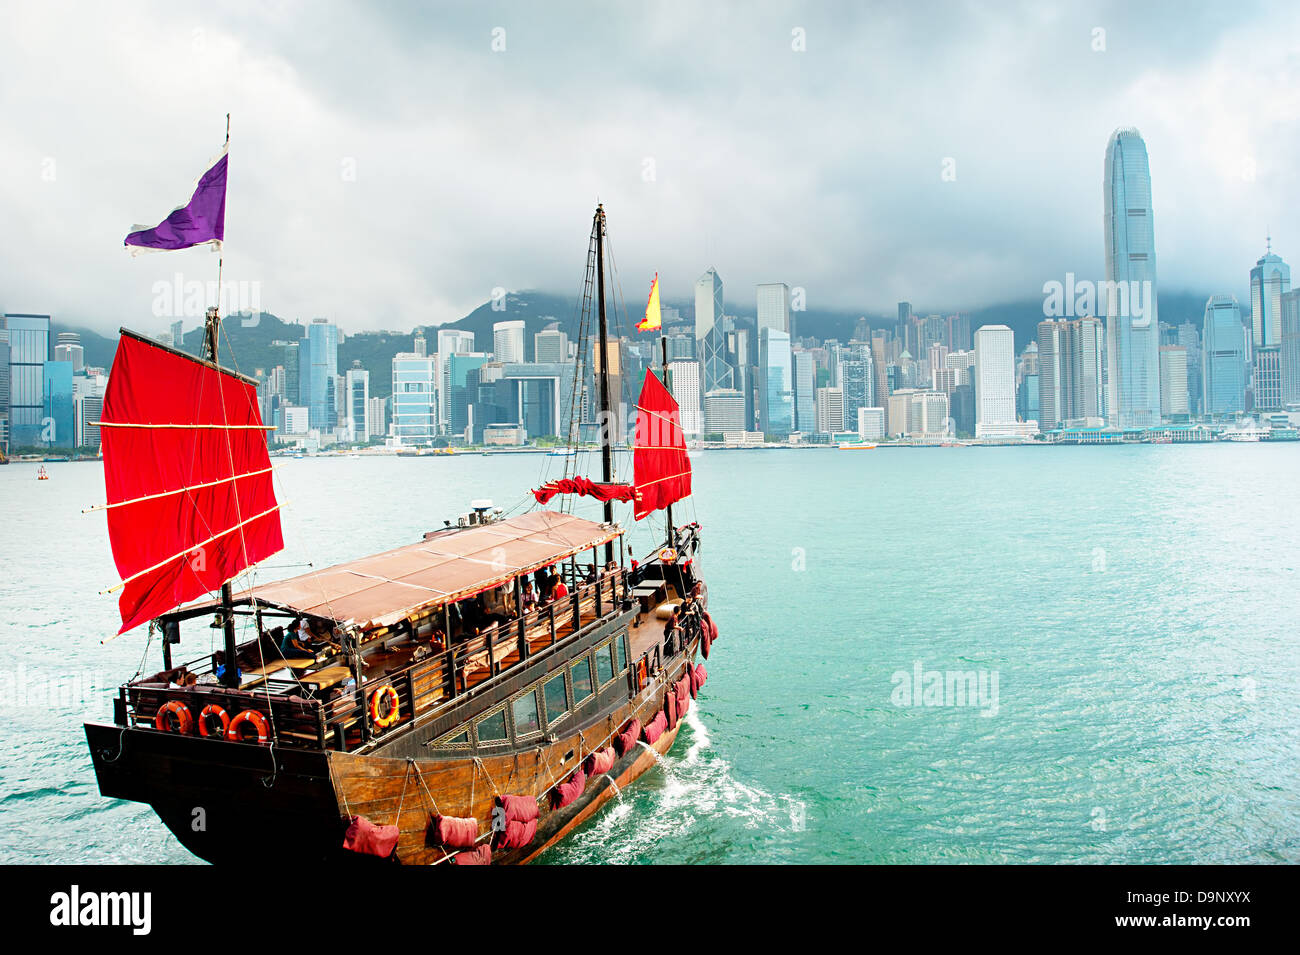 De style chinois traditionnel voilier naviguant dans le port de Hong Kong Photo Stock